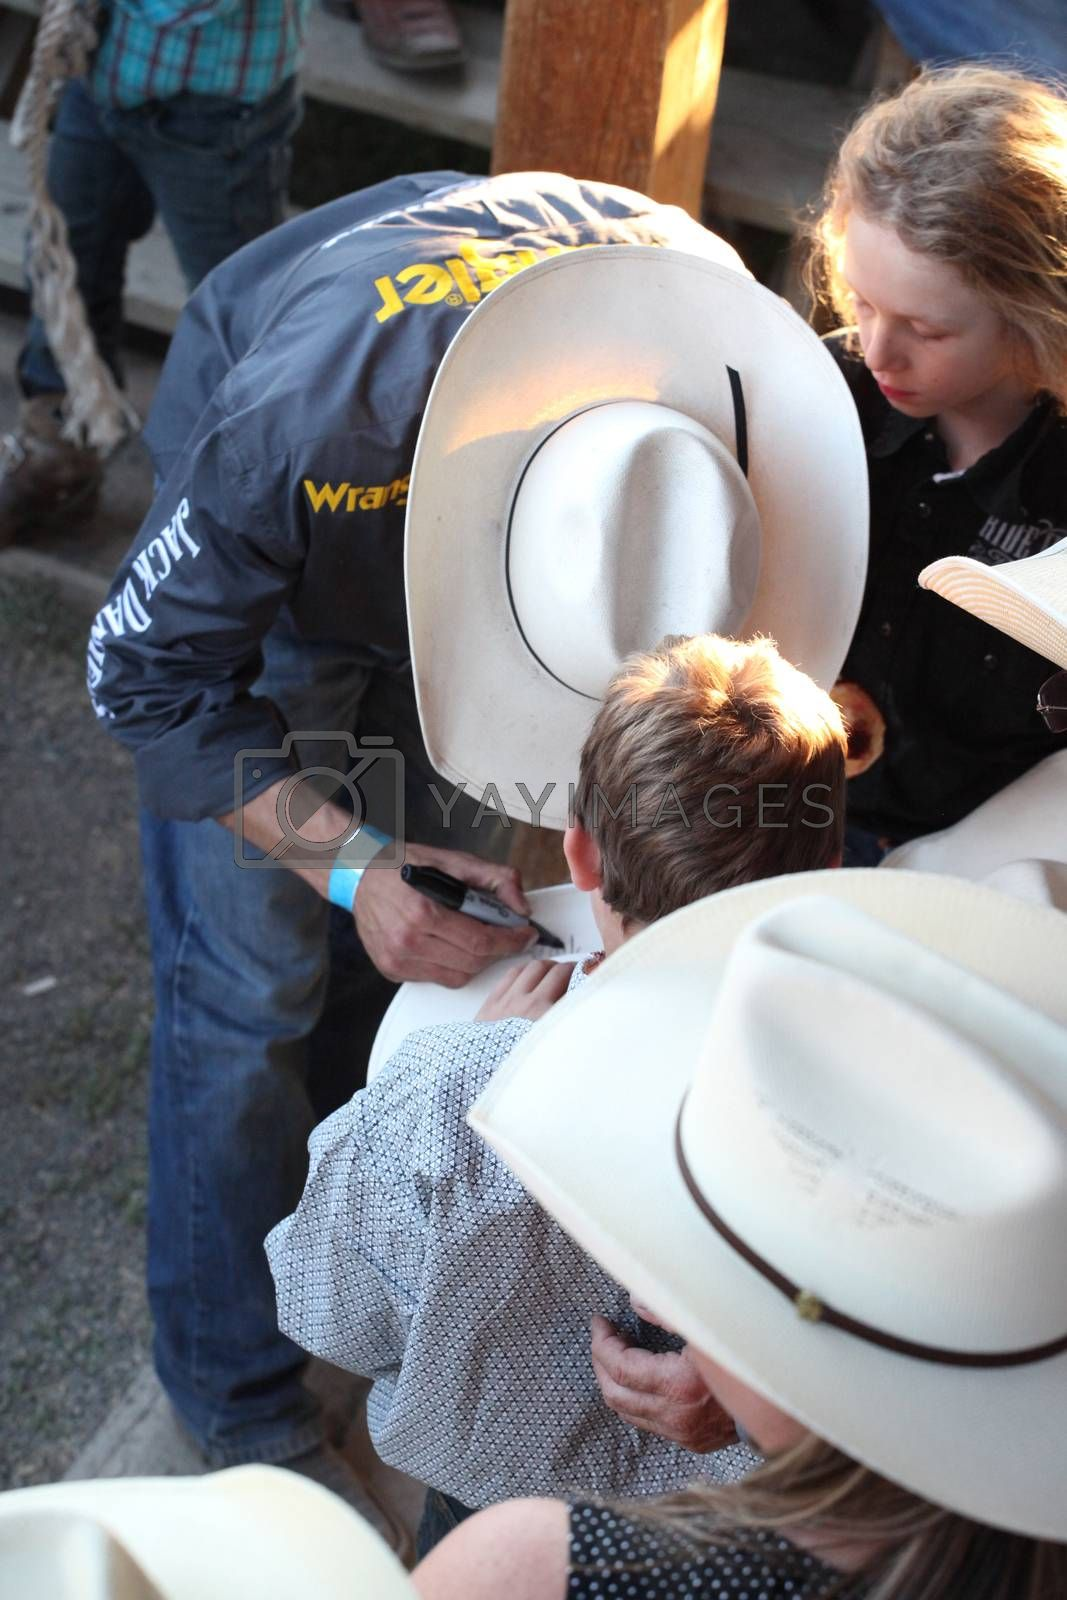 MERRITT; B.C. CANADA - May 30; 2015: Fans receiving autographs at The 3rd Annual Ty Pozzobon Invitational PBR Event.